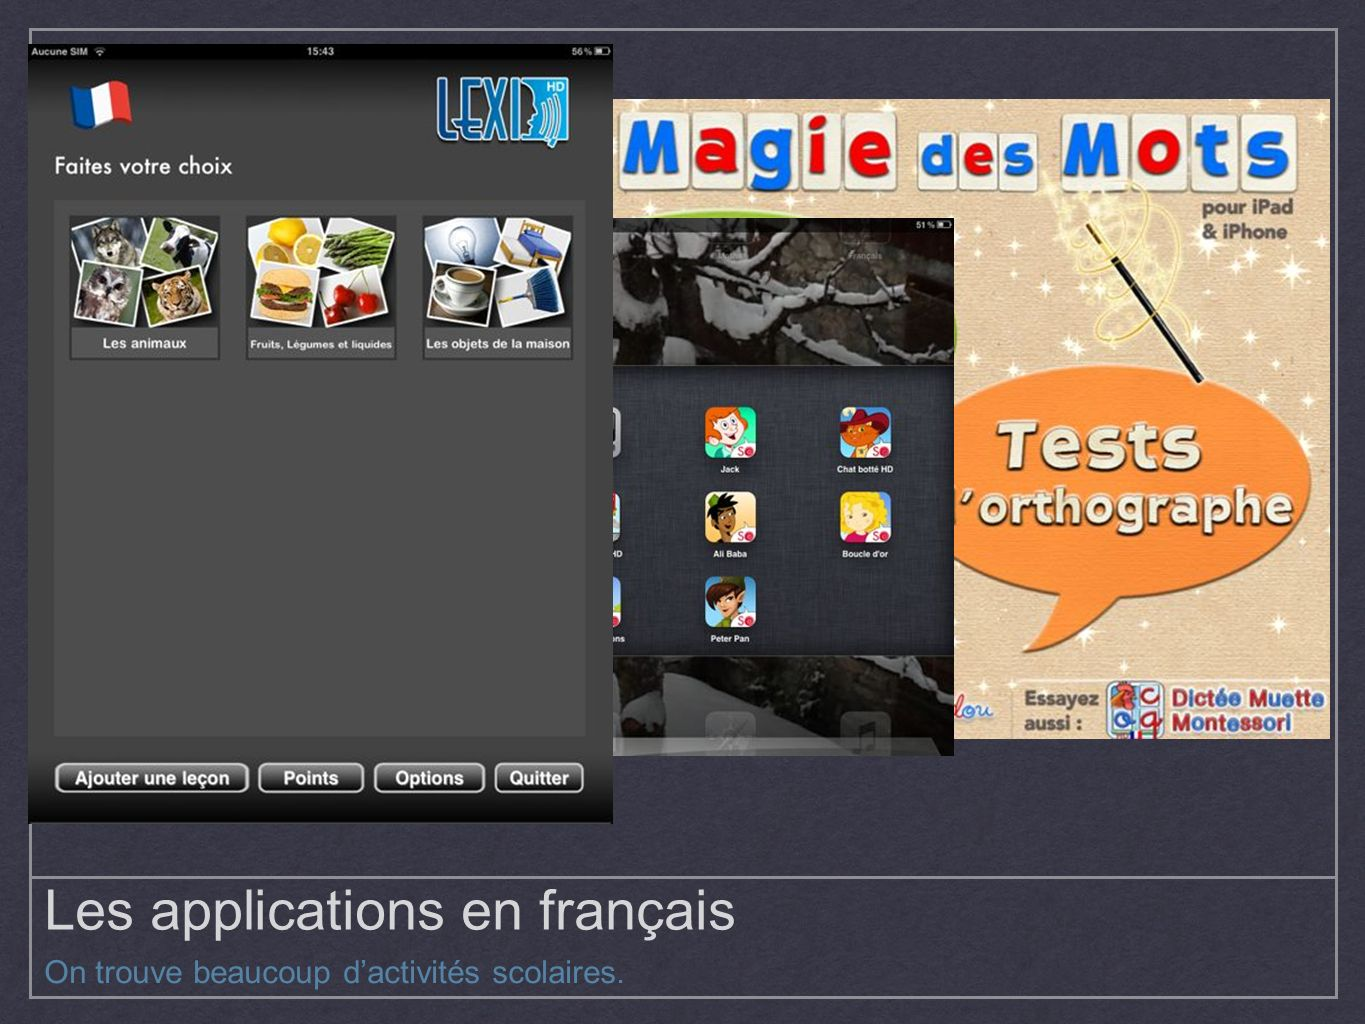 Les applications en français